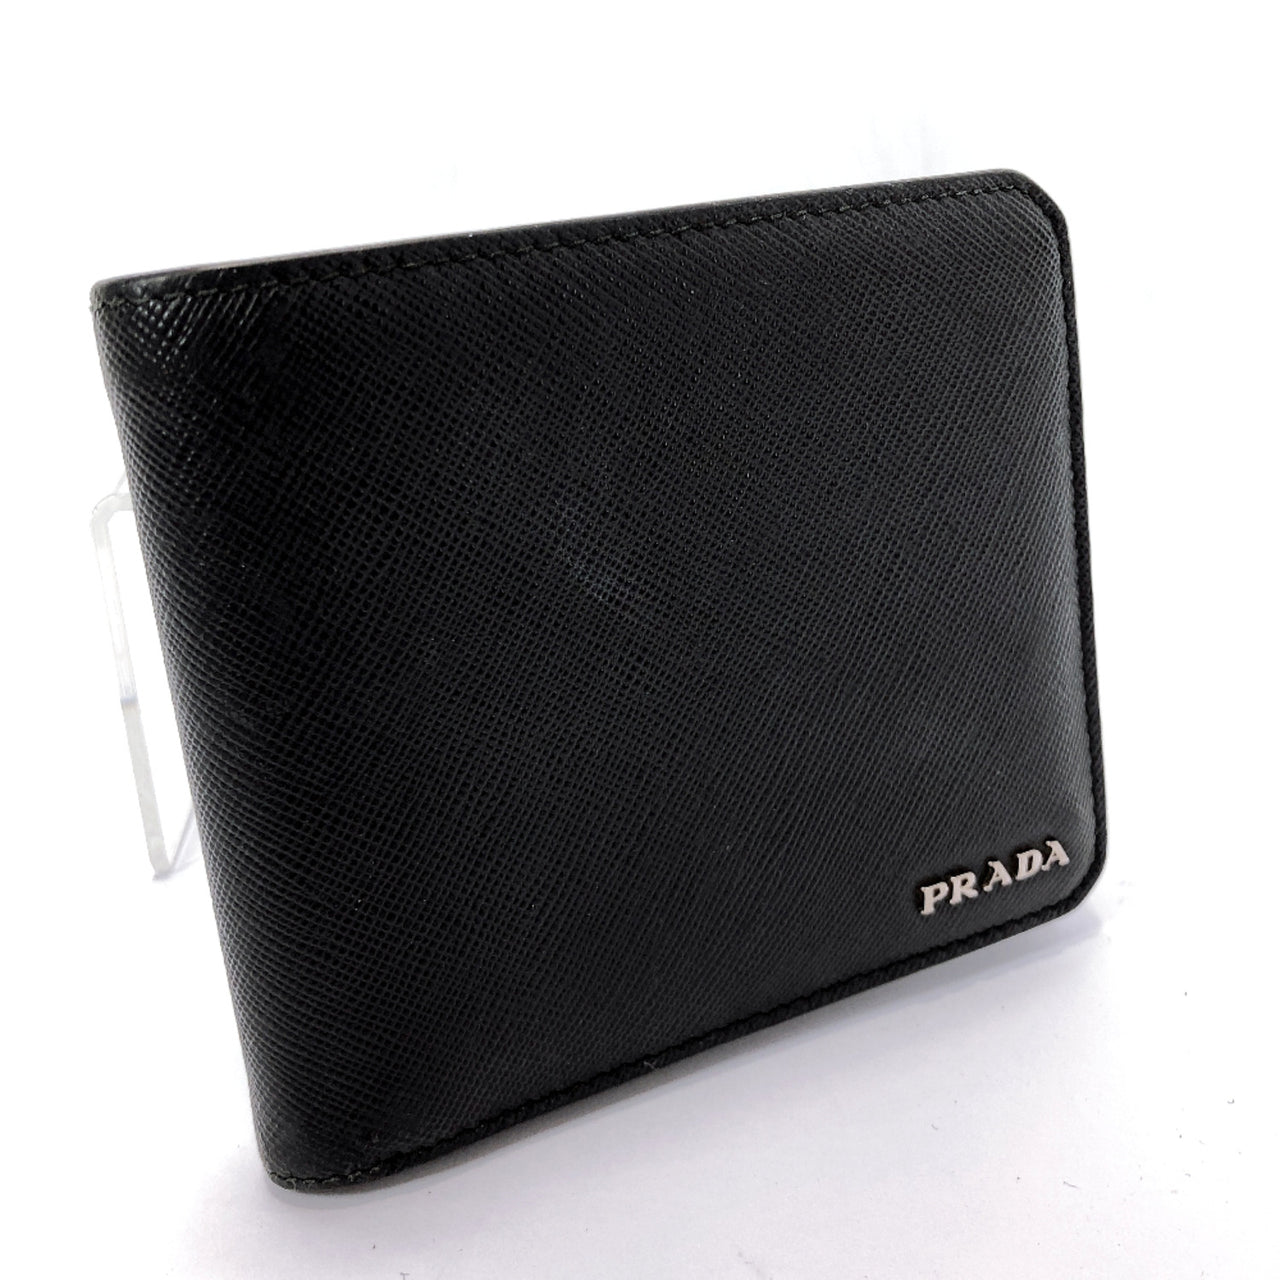 PRADA Bill Compartment Safiano leather black 178 mens Used